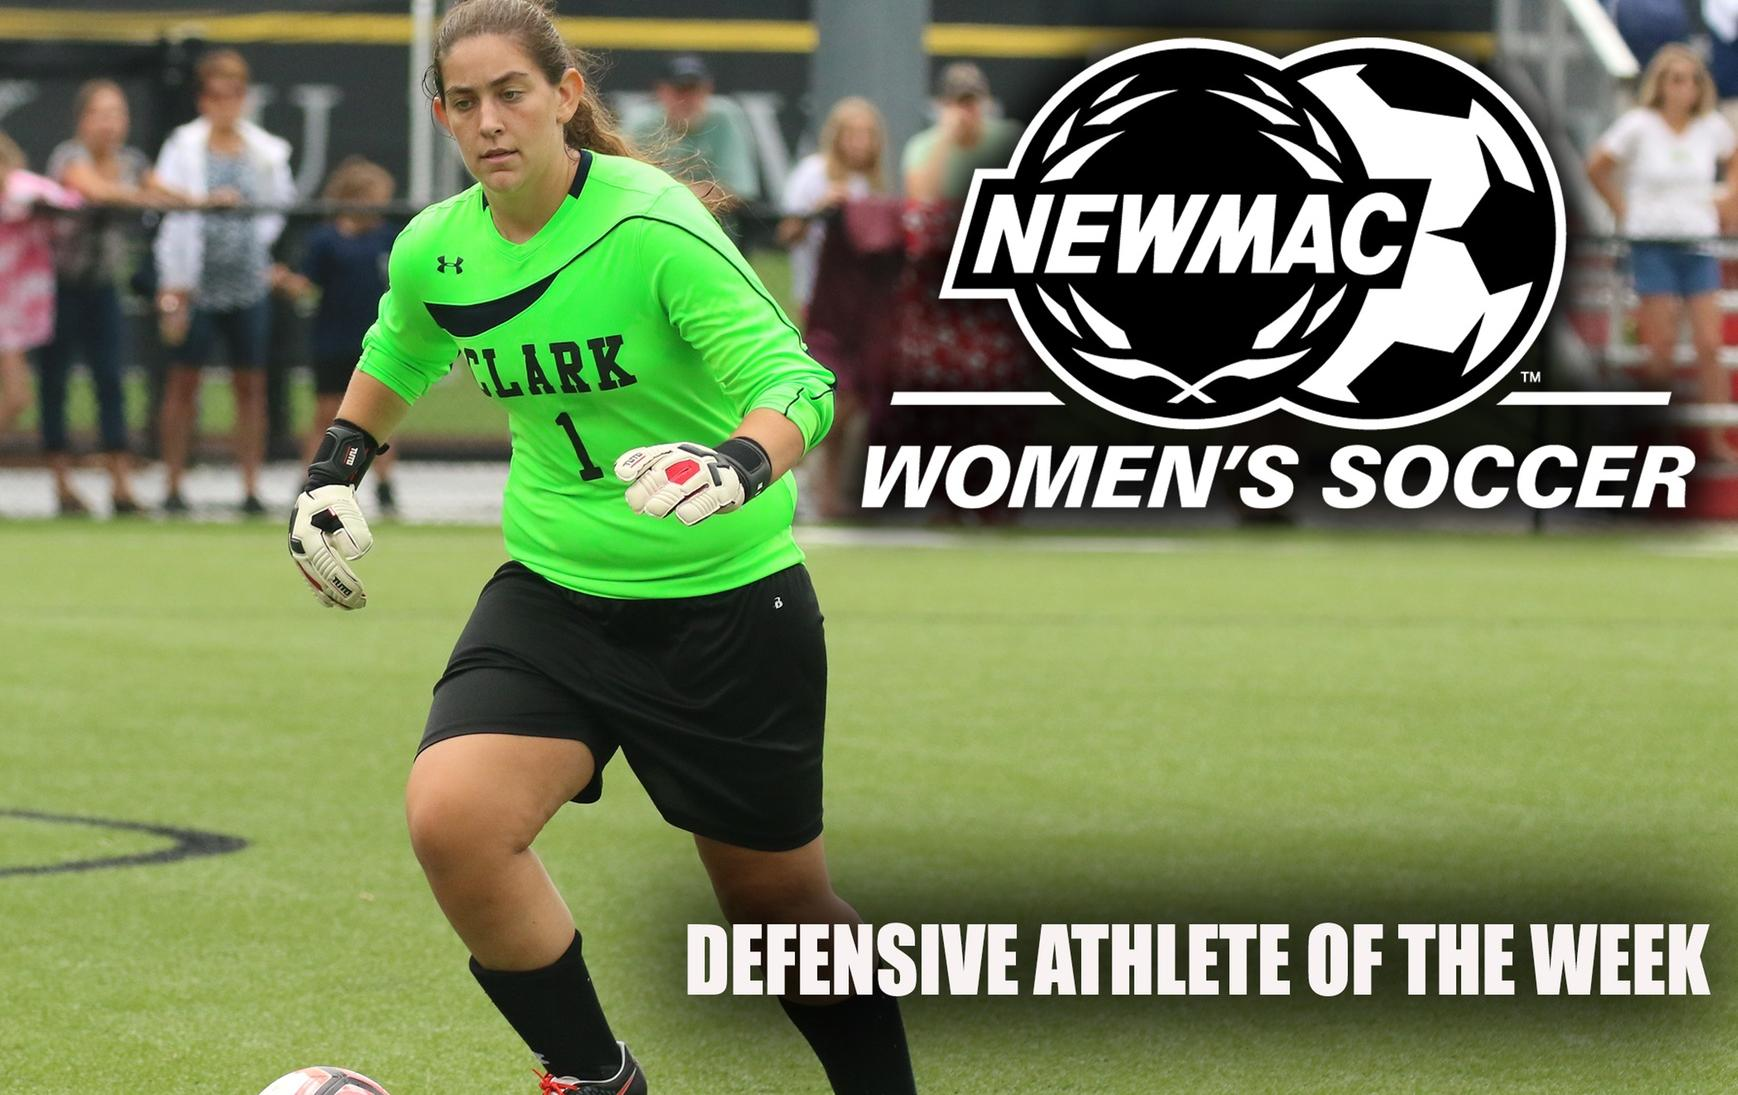 Christy Named NEWMAC Women's Soccer Defensive Athlete of the Week